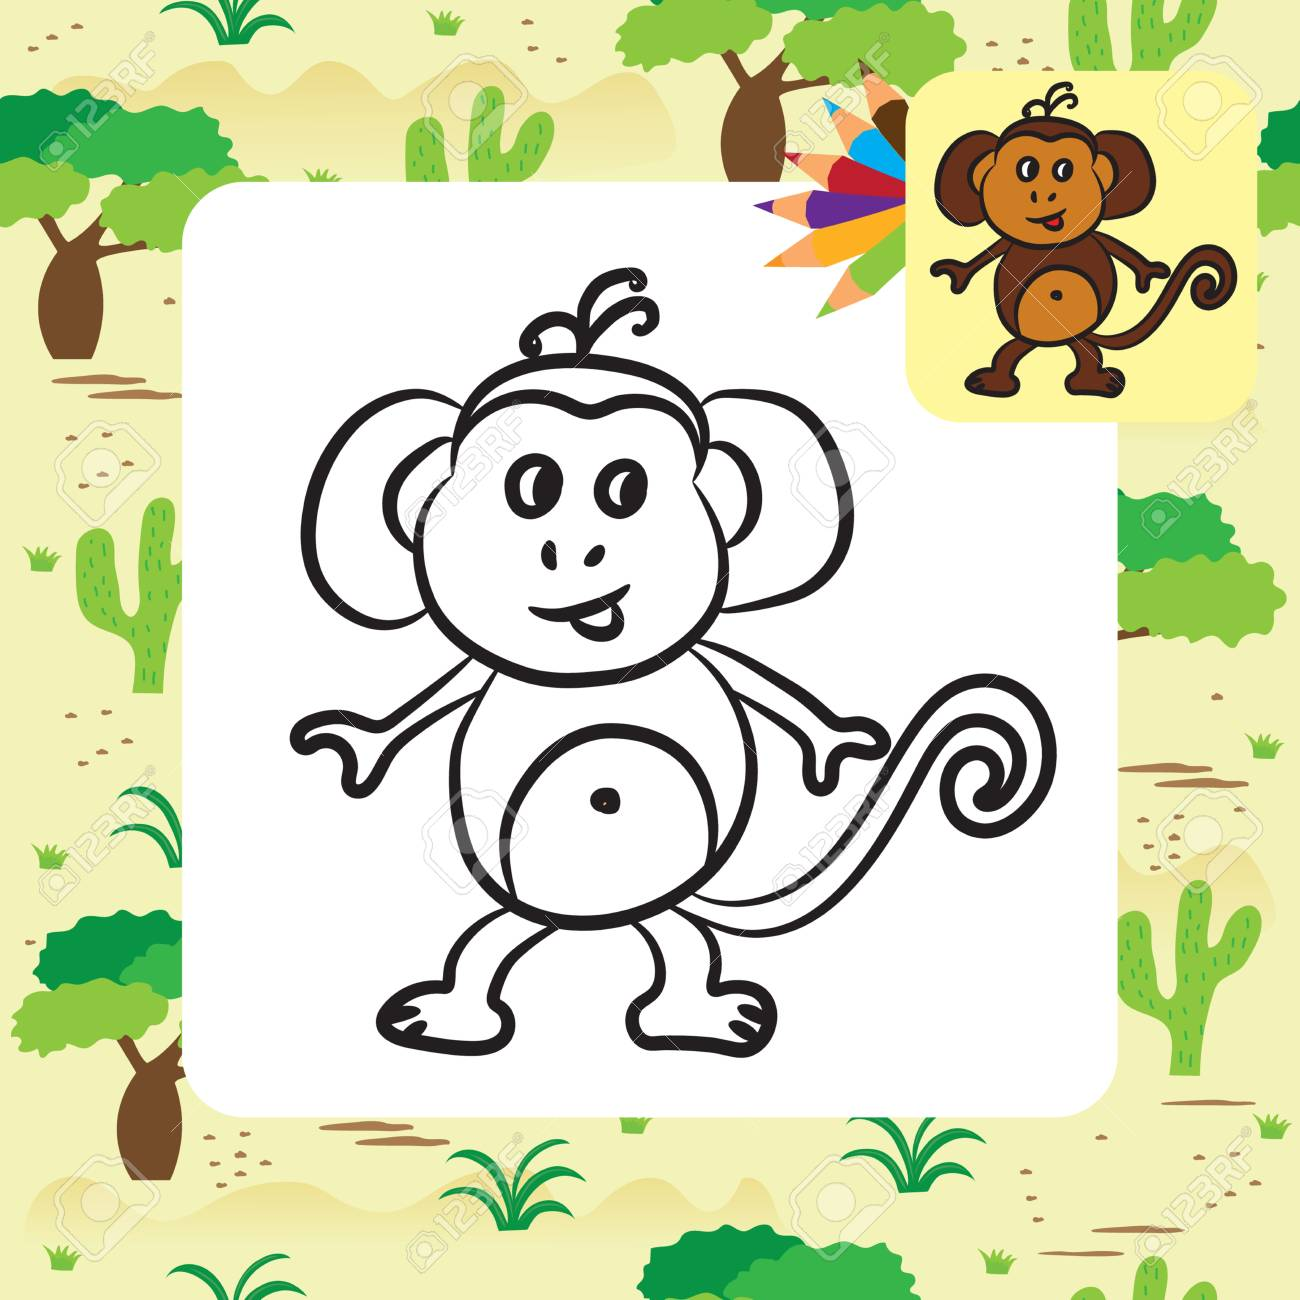 Cute Cartoon Monkey Coloring Page Vector Illustration Royalty Free Cliparts Vectors And Stock Illustration Image 44079606